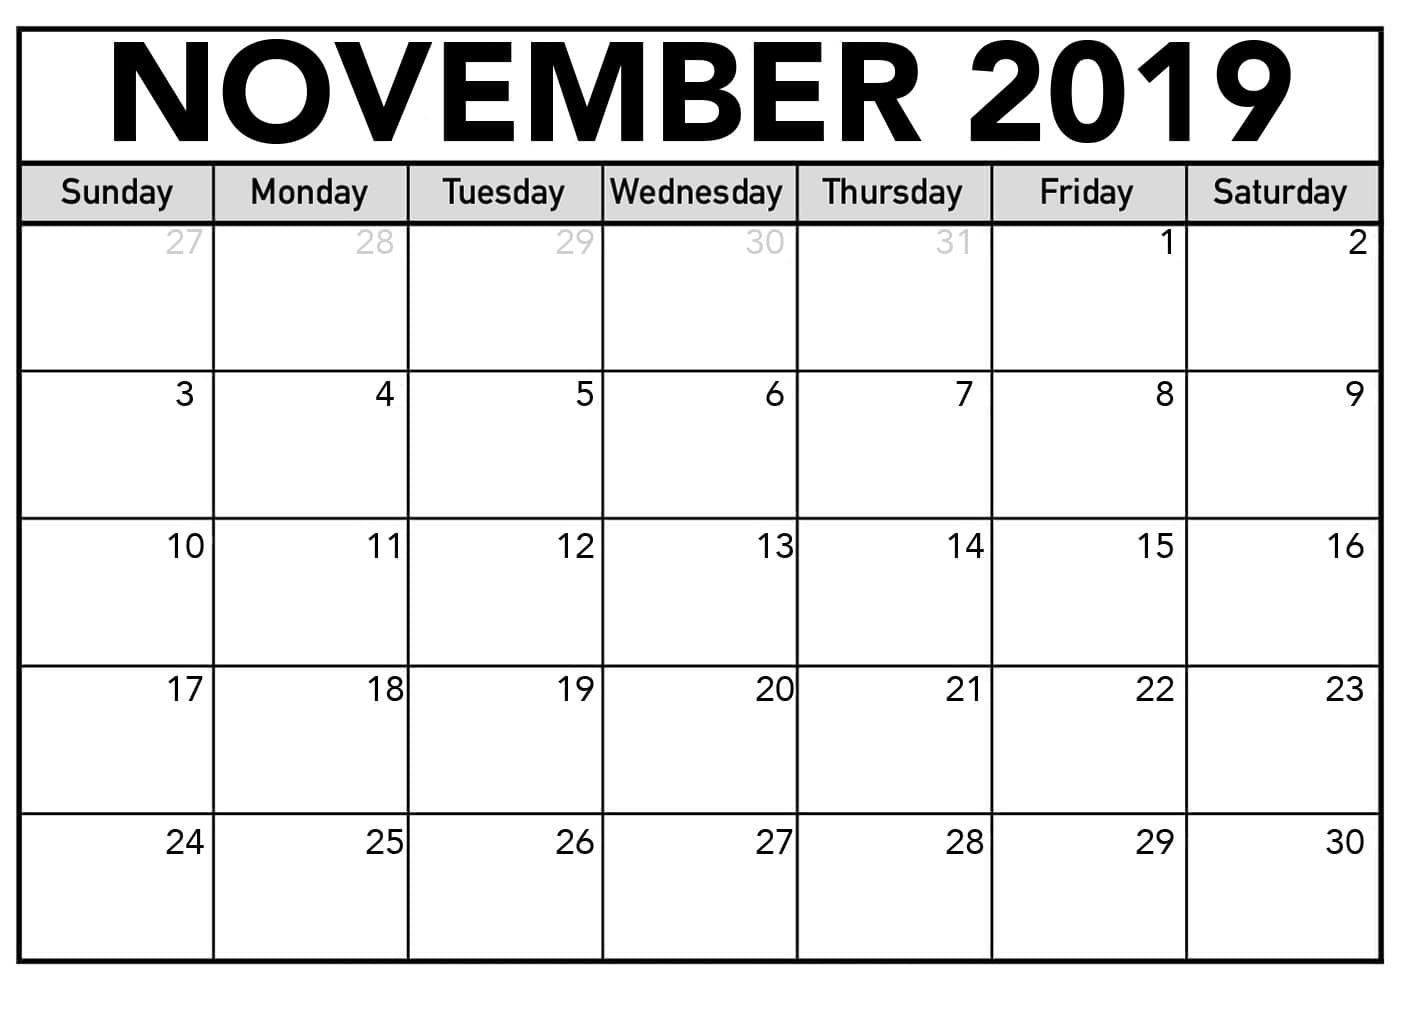 November 2019 PDF Calendar With Holidays